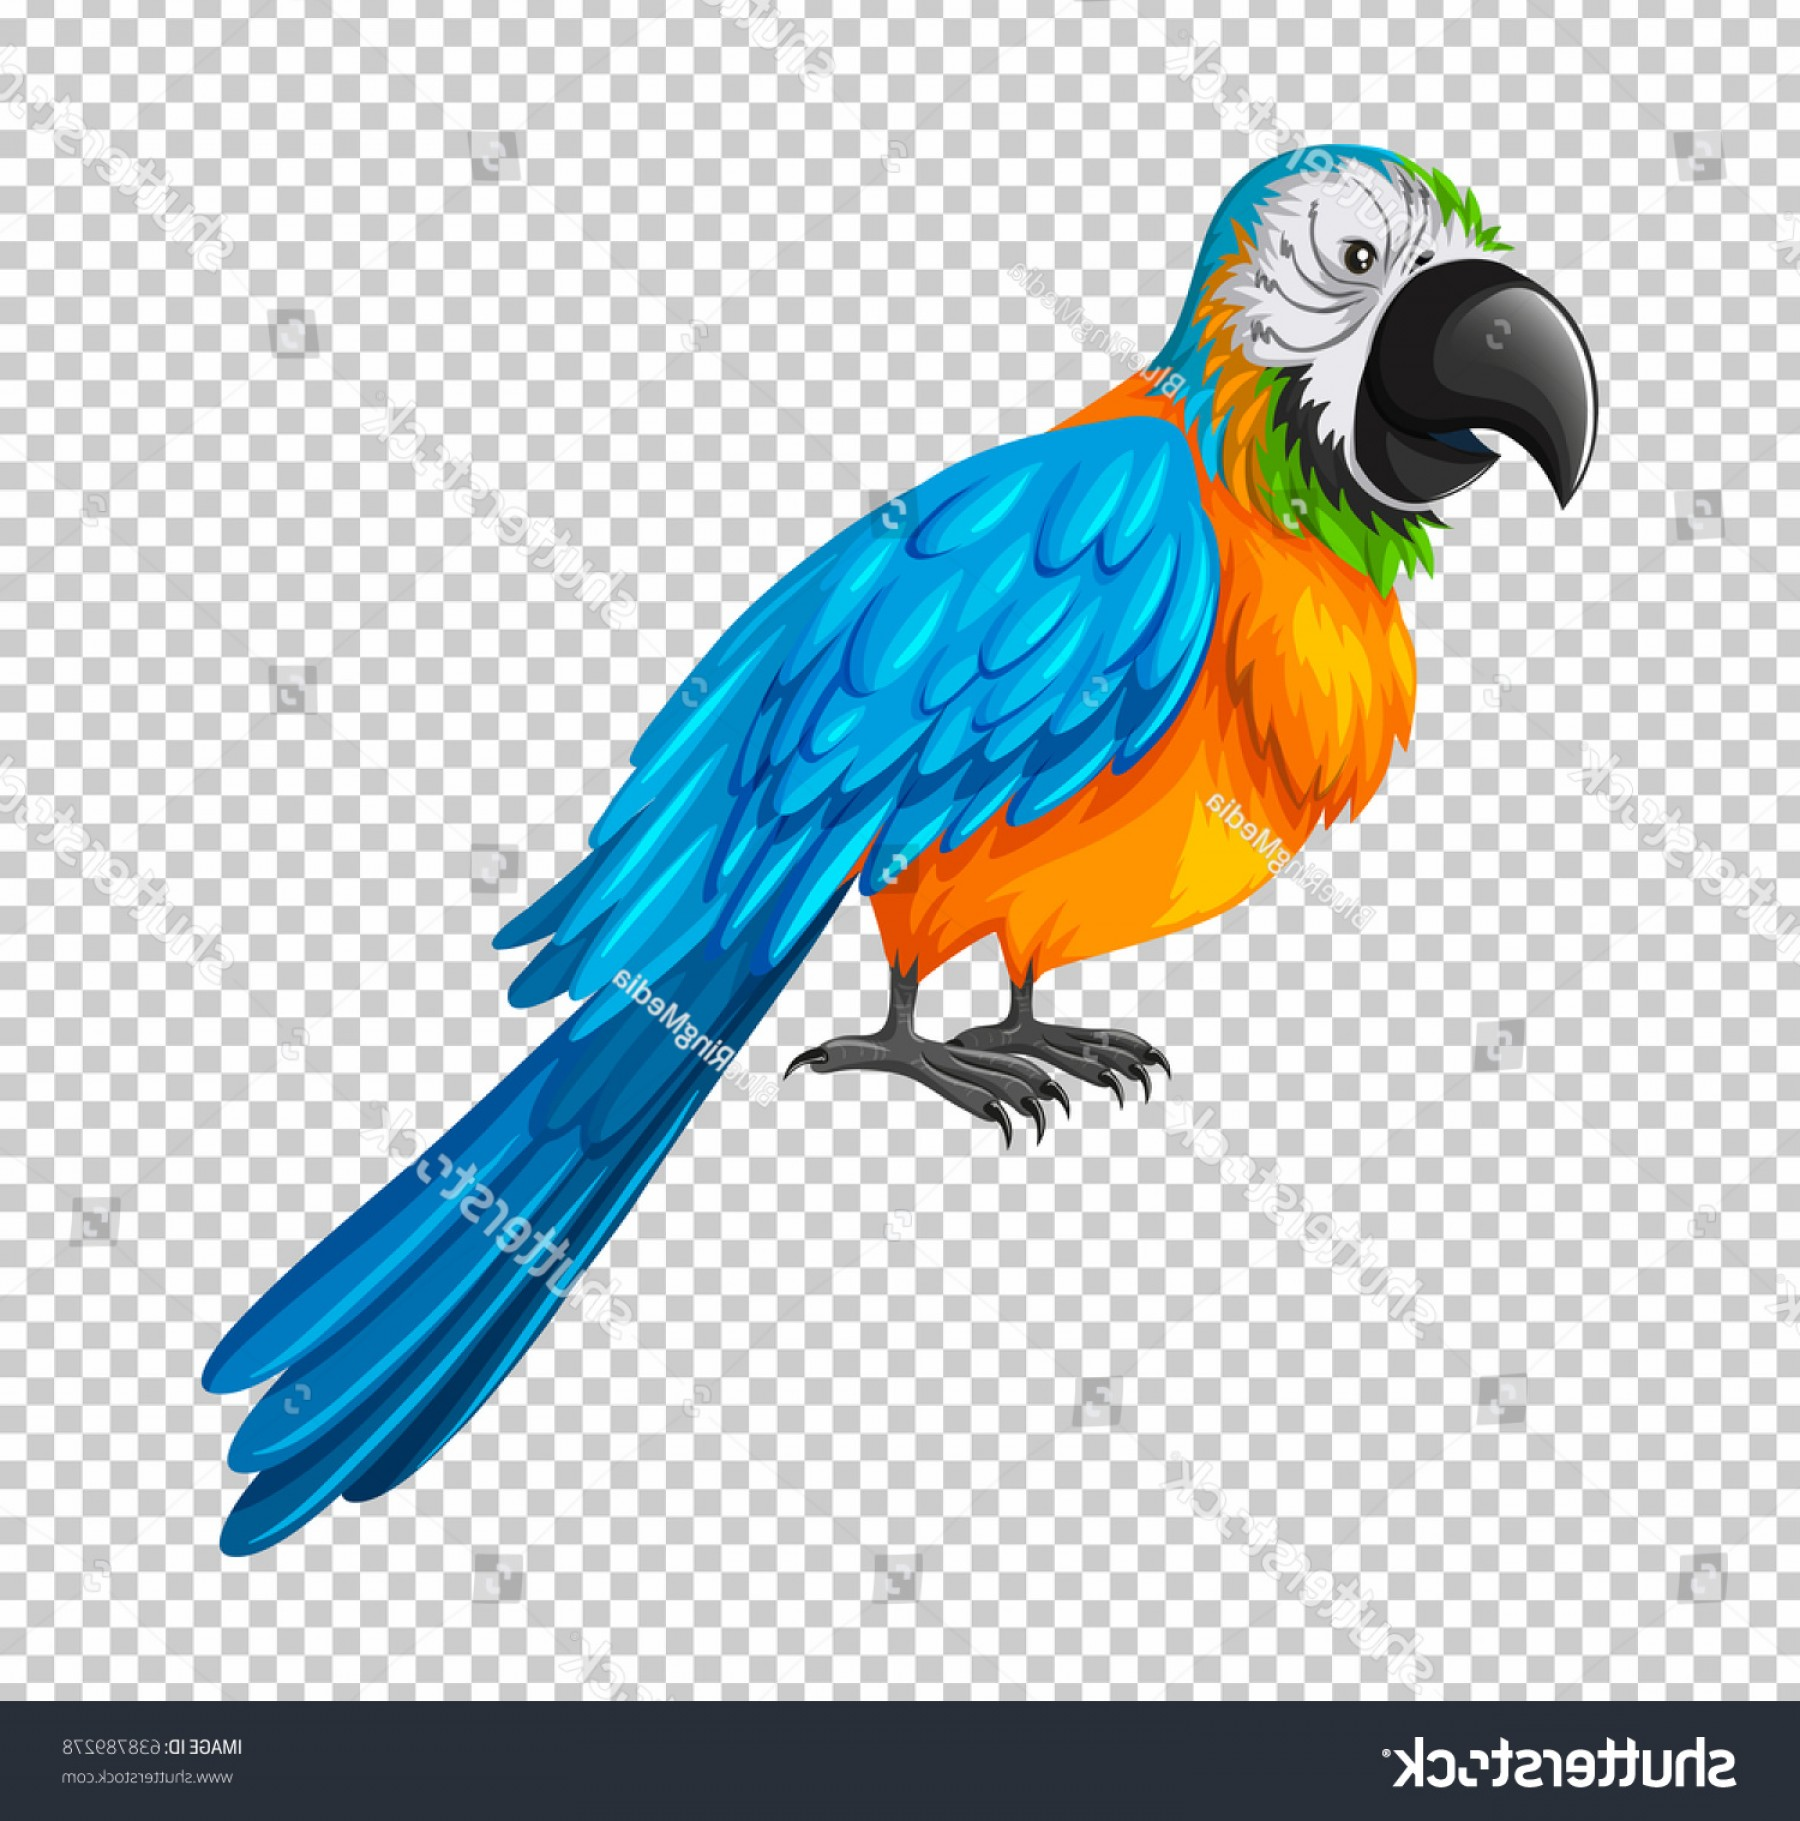 Abstract Vector Art Parrot: Colorful Parrot On Transparent Background Illustration